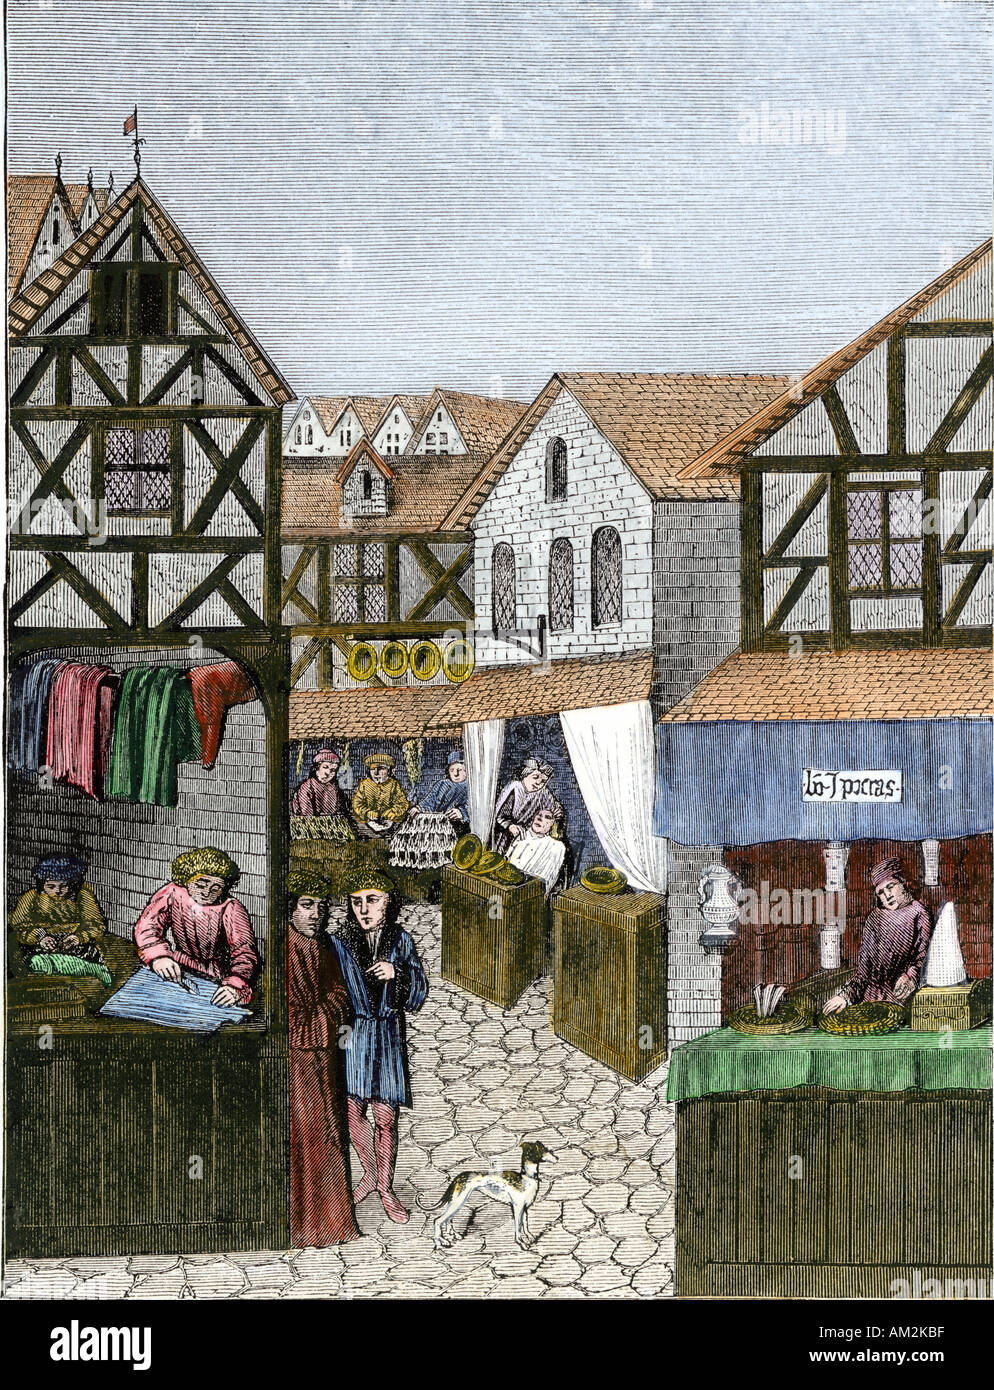 Shops in a medieval apothecary street showing a barber furrier and tailor France 1400s. Hand-colored woodcut Stock Photo